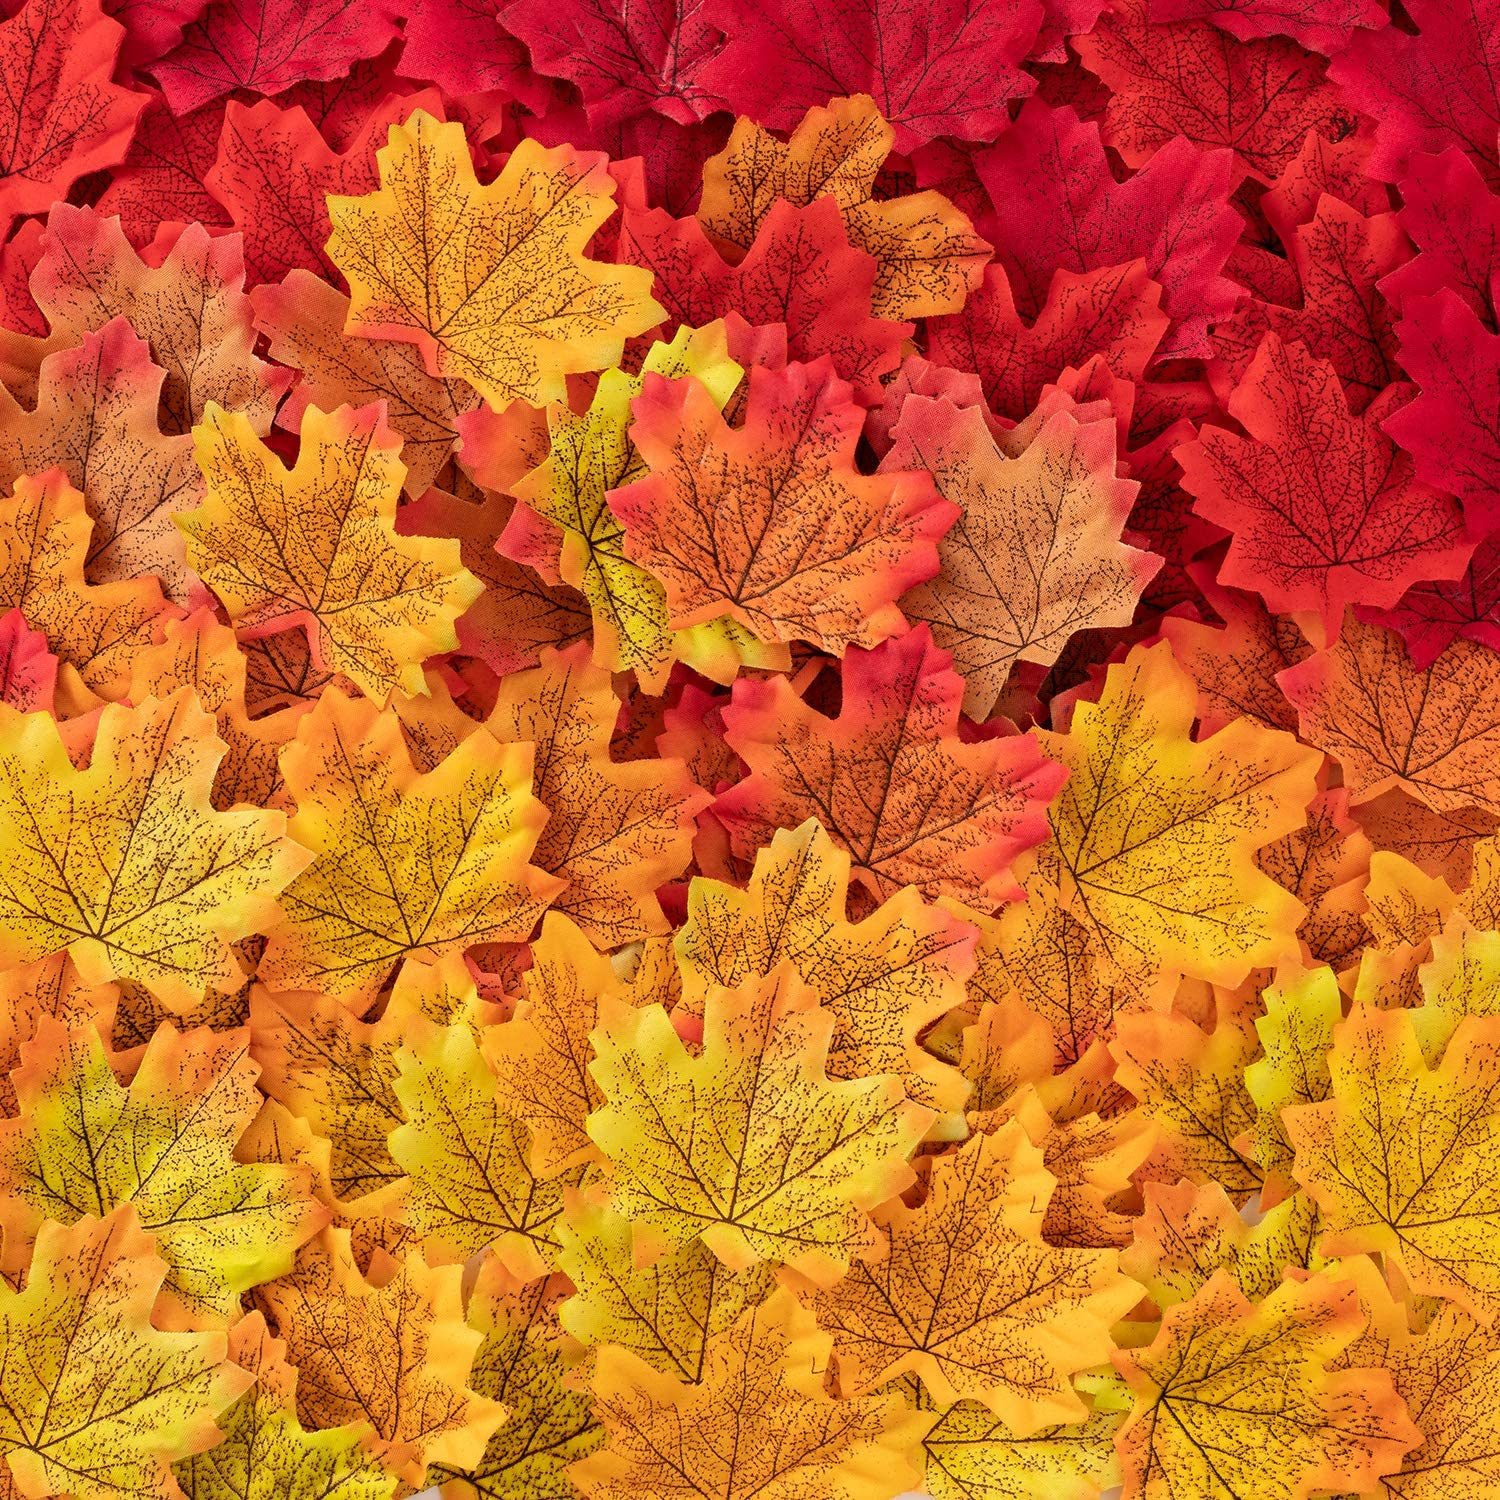 MoonLa 1000Pcs Fall Artificial Maple Leaves Thanksgiving Autumn Leaf for Wedding Party Events Table Decor Halloween Decorations (10 Colors)